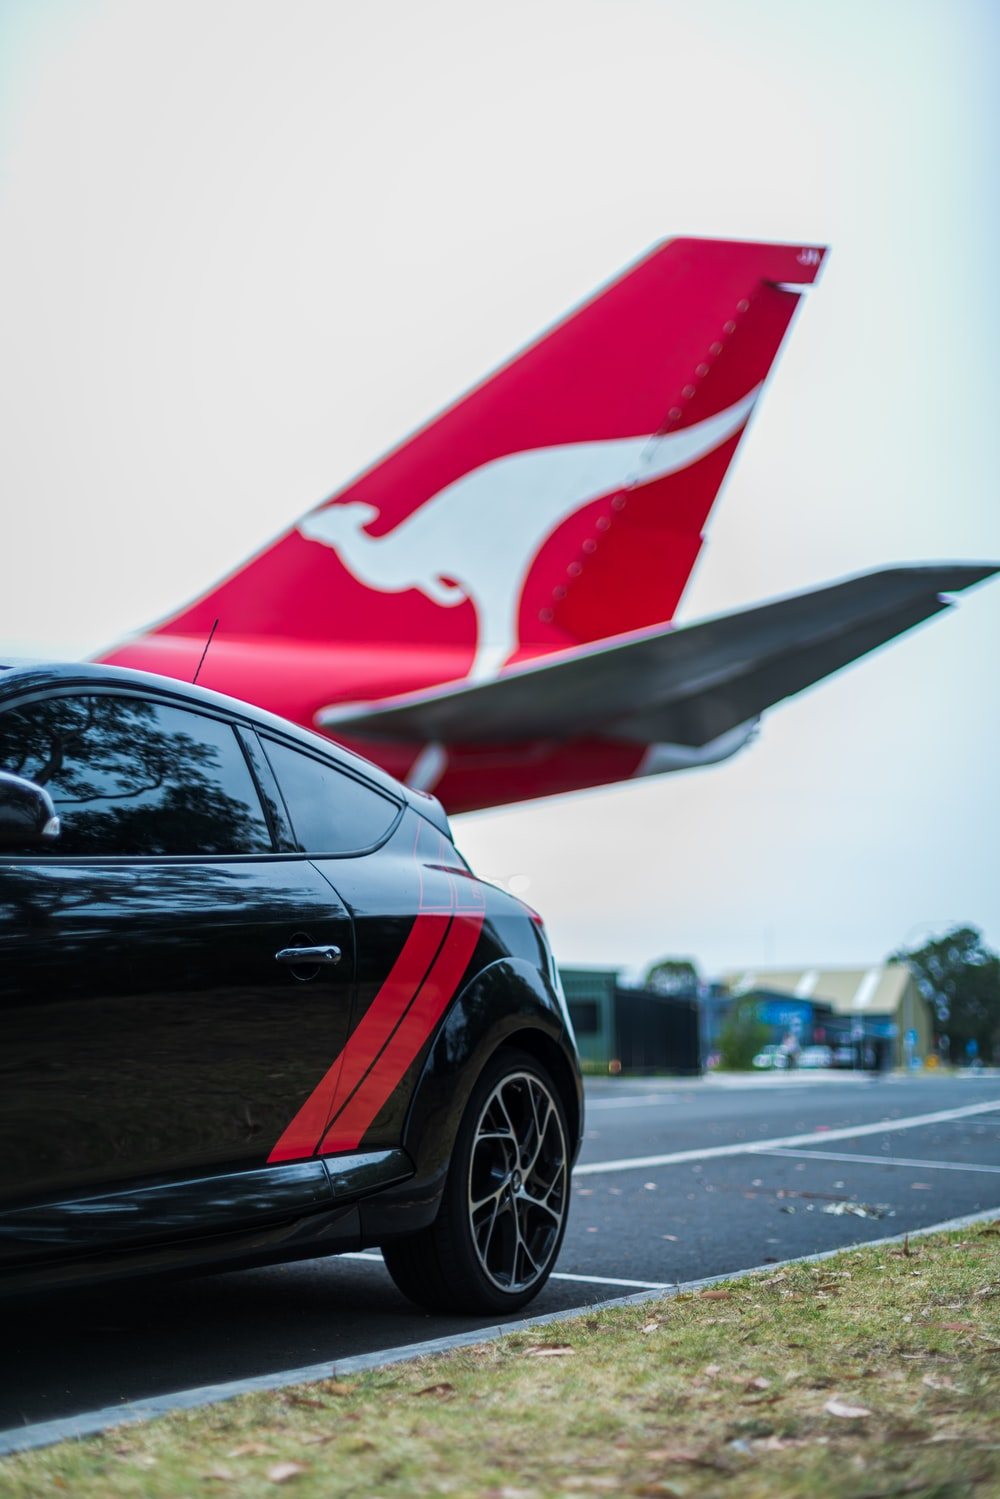 red and white airplane behind a black hatchback